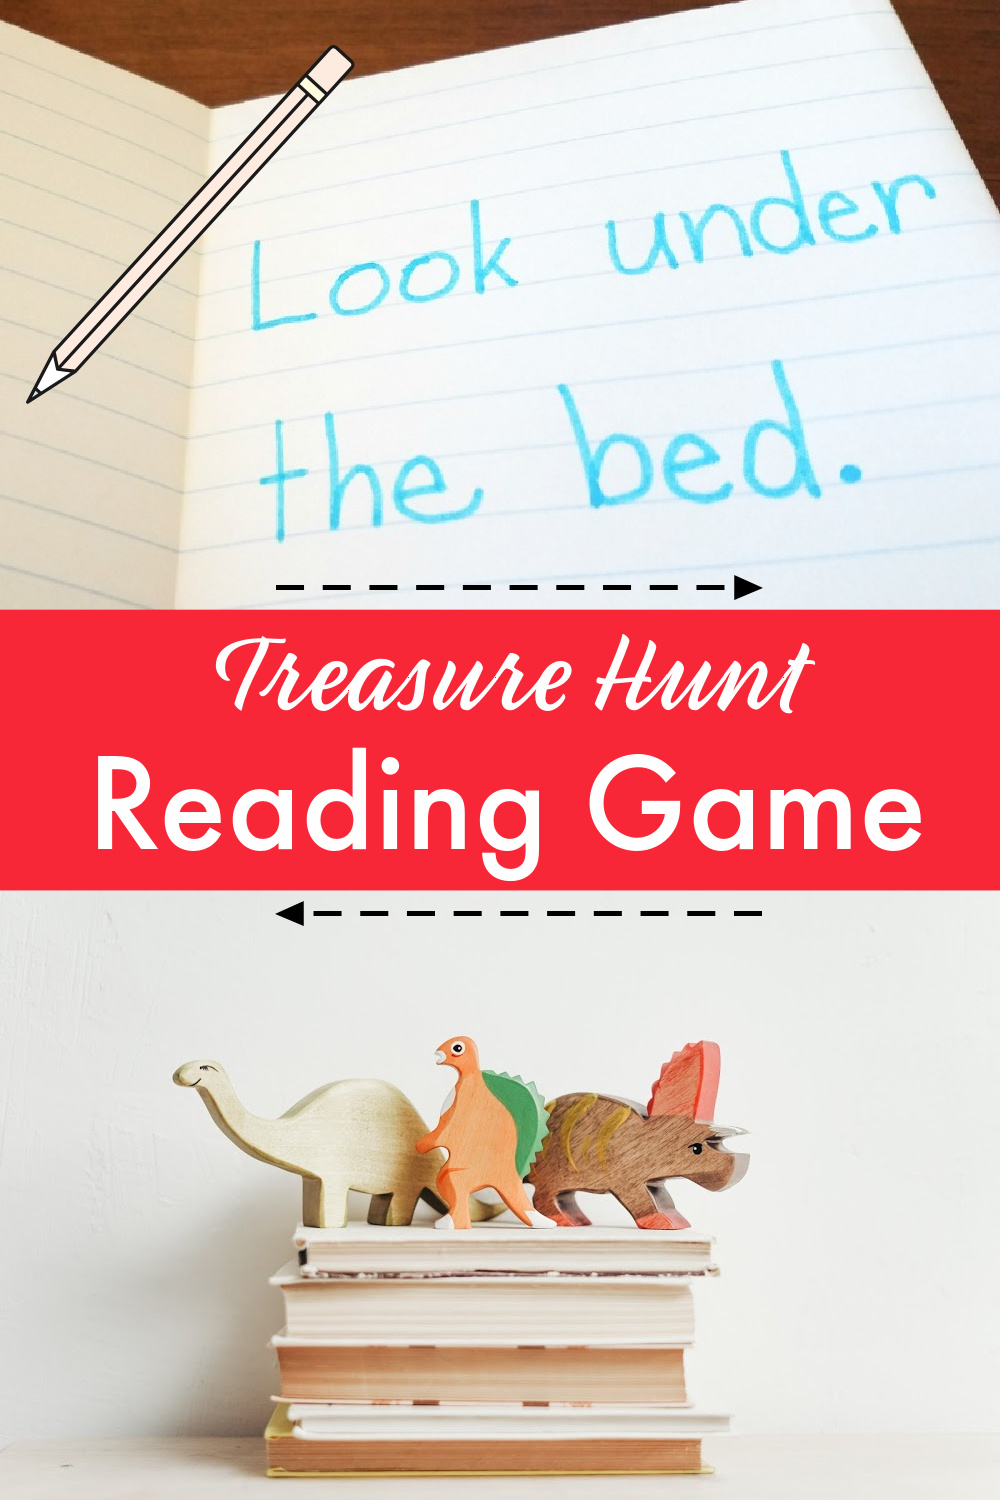 A Reading Game for Reading Practice